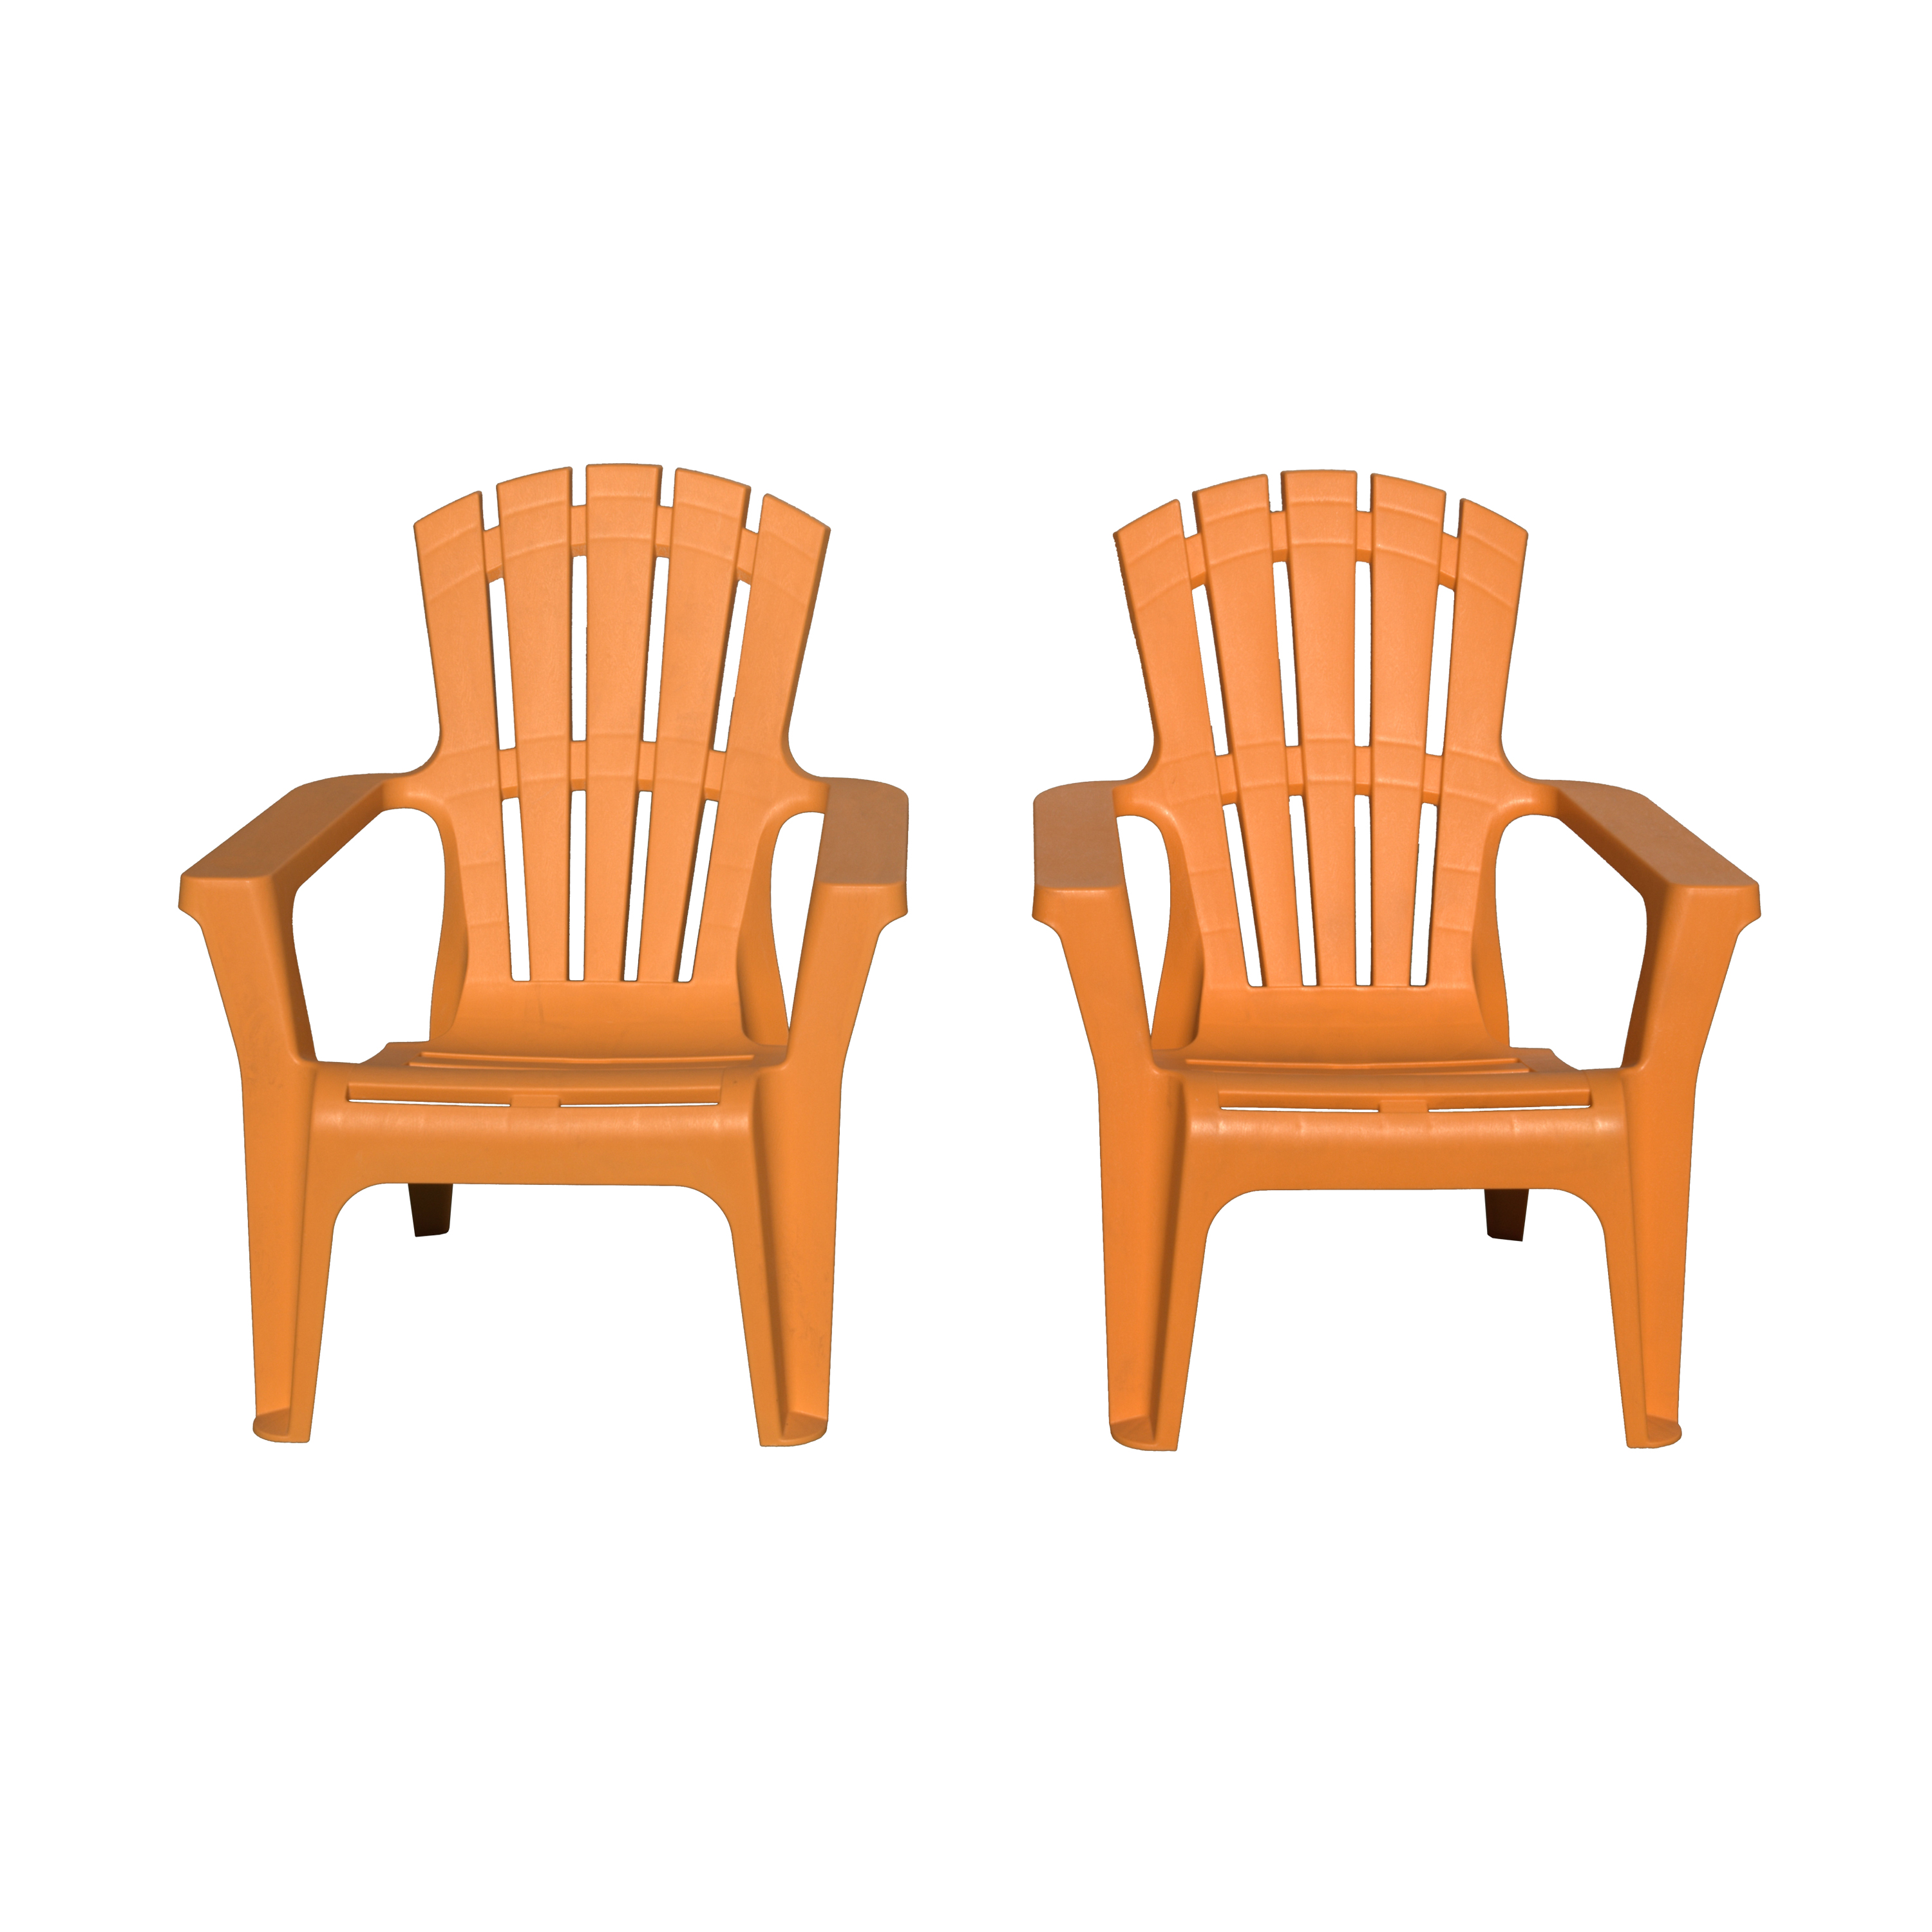 Stackable Adirondack Chairs in Orange (Set of 2)